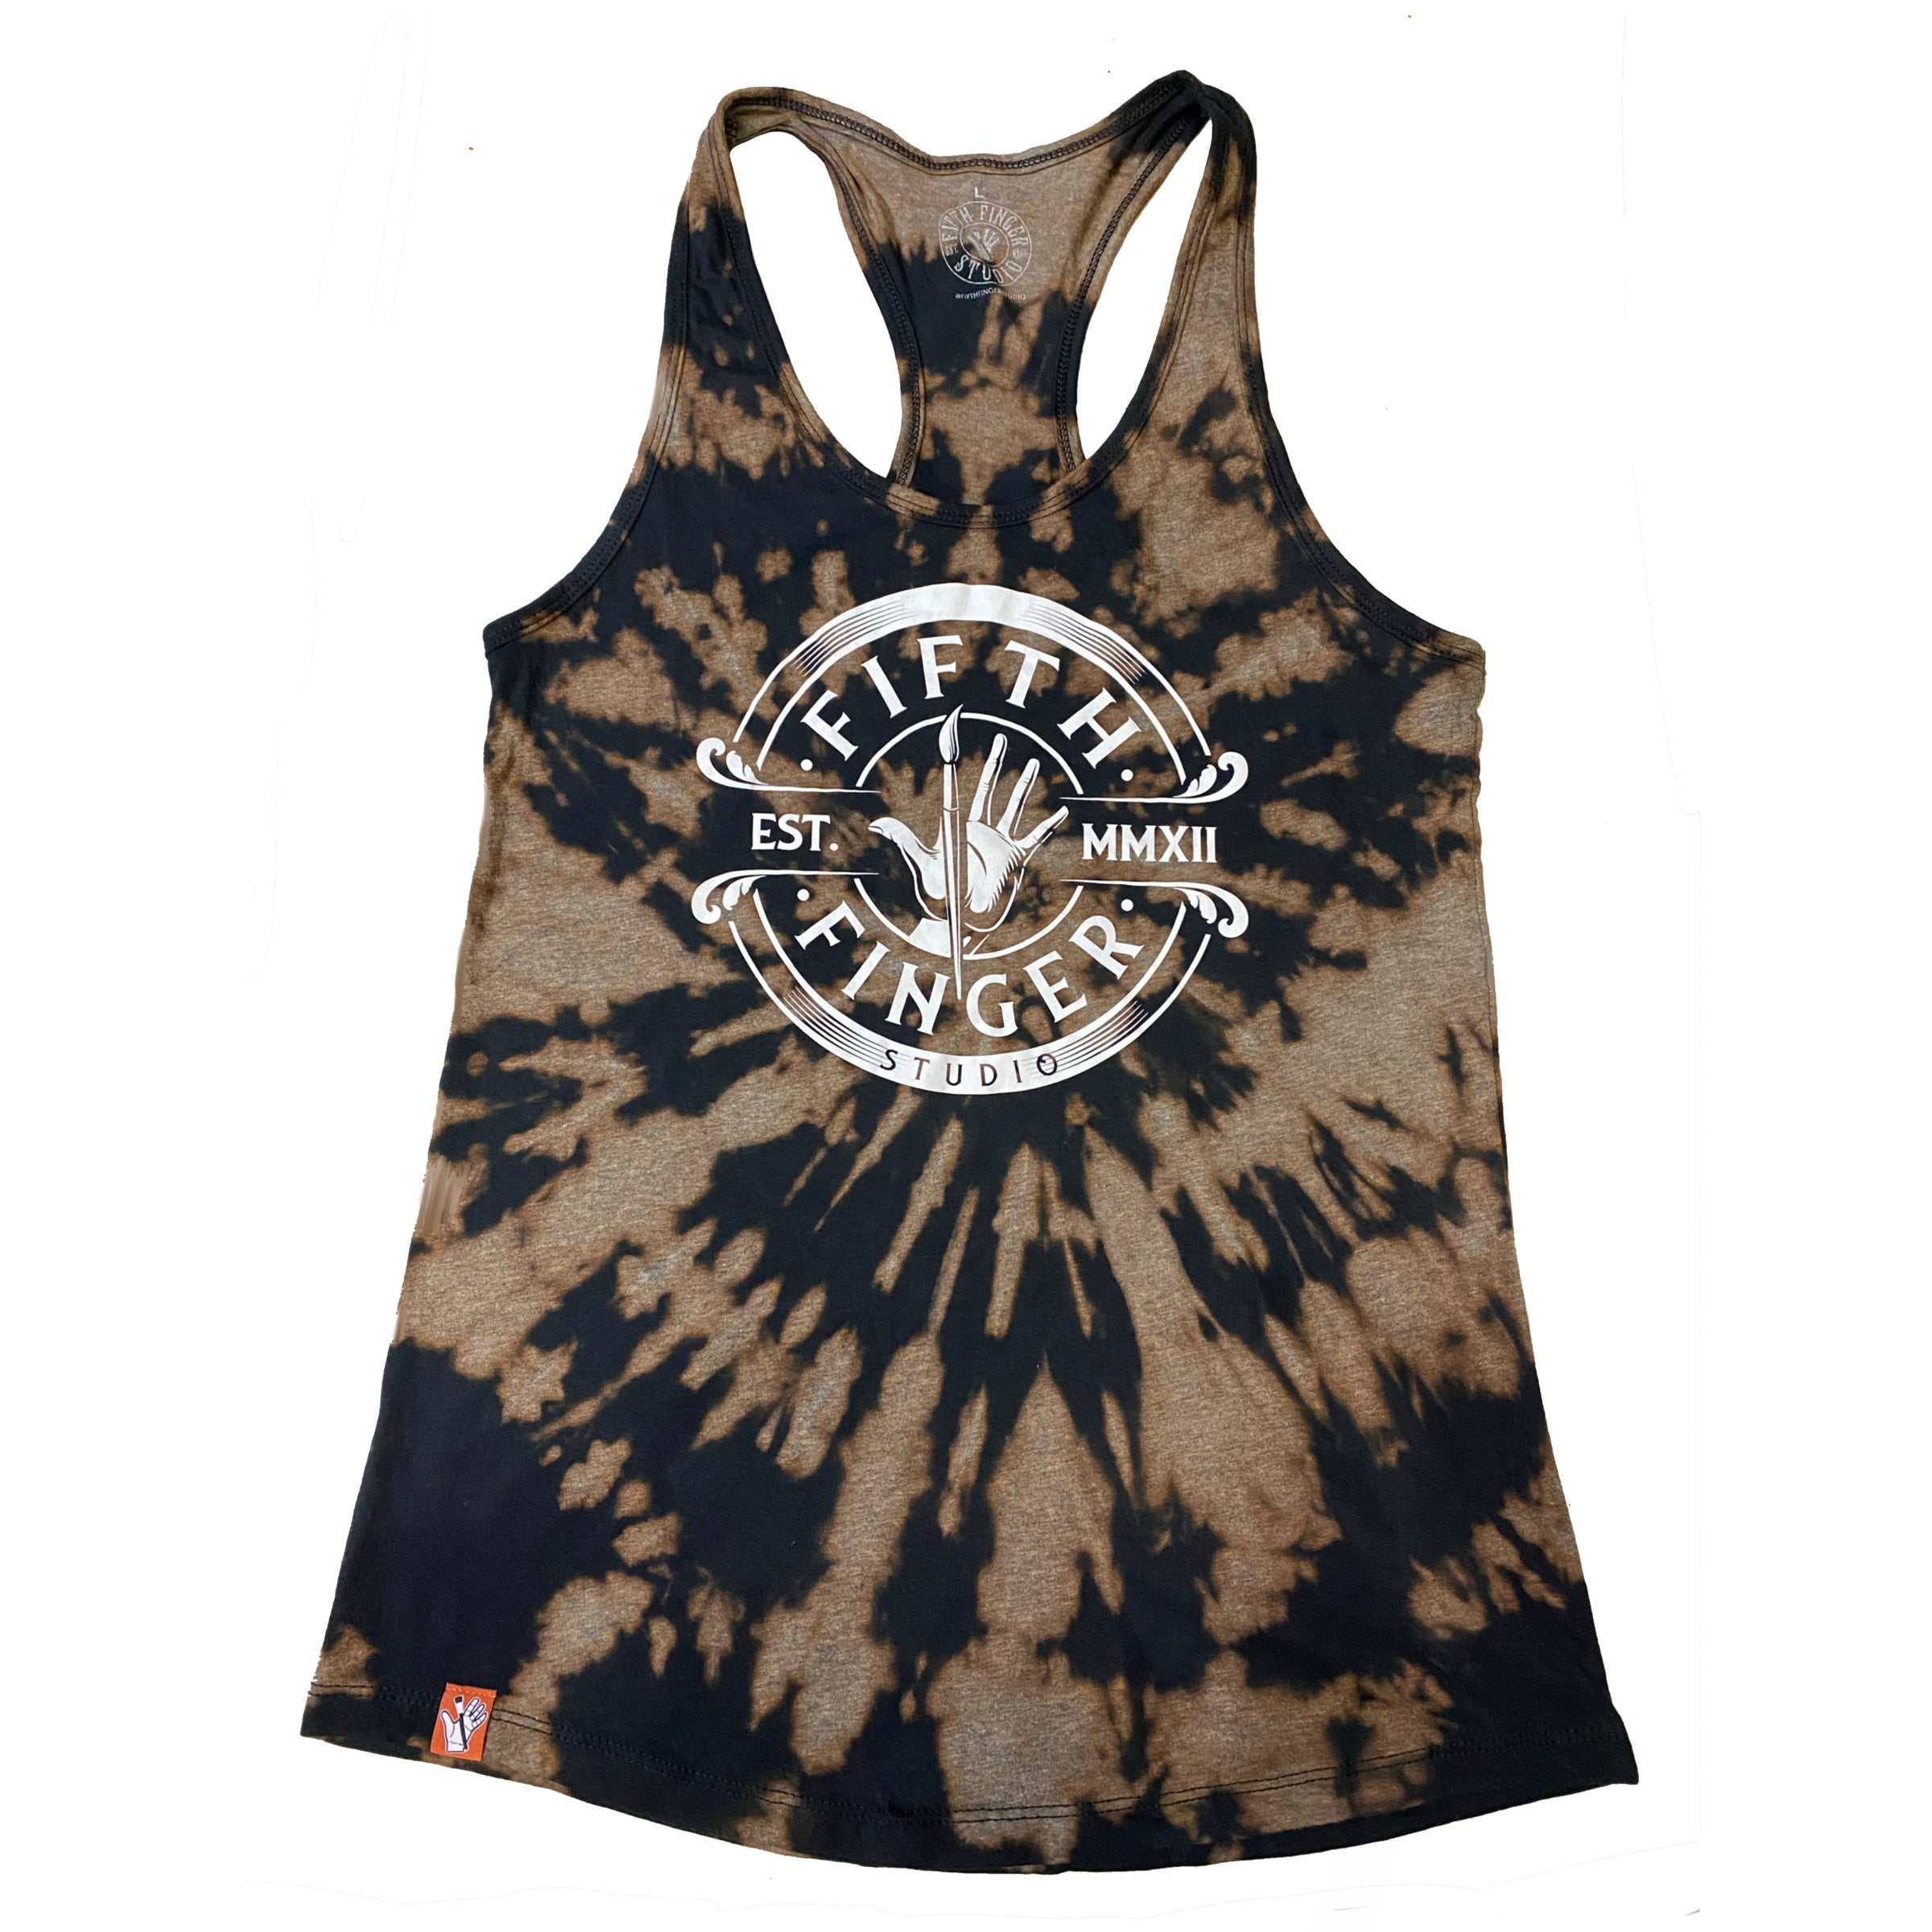 Established tank Tye dye